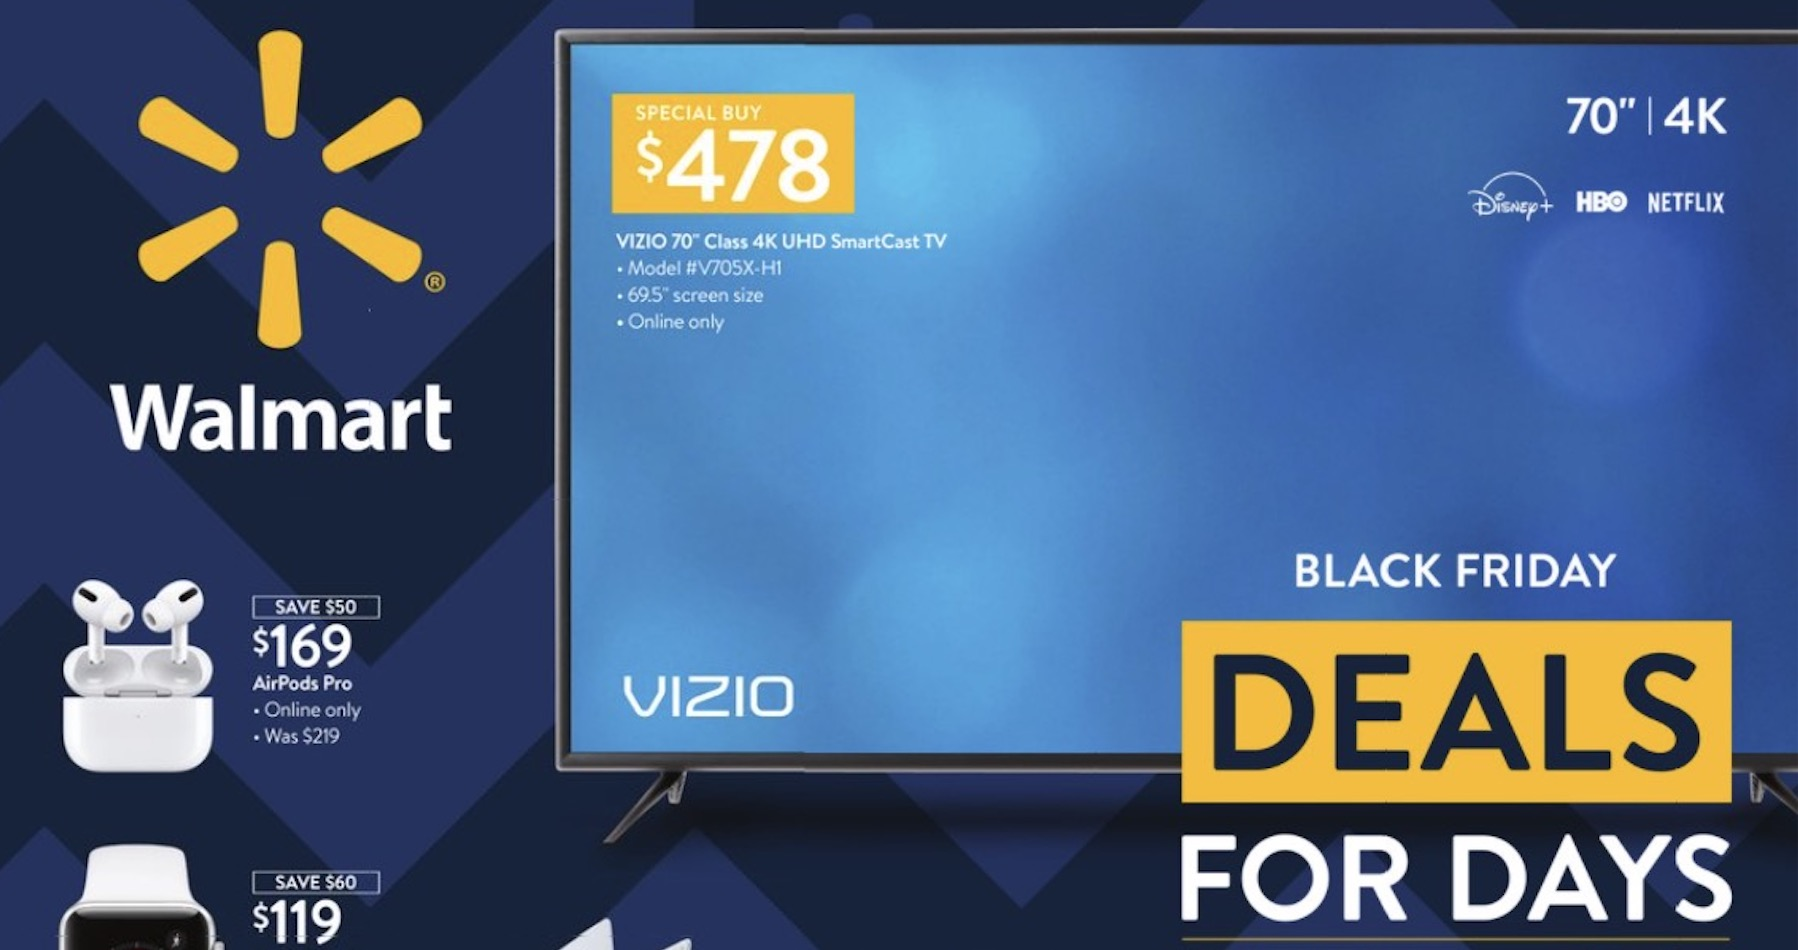 Walmart Black Friday Here Are The Best Deals You Can Find Right Now Online Wane 15